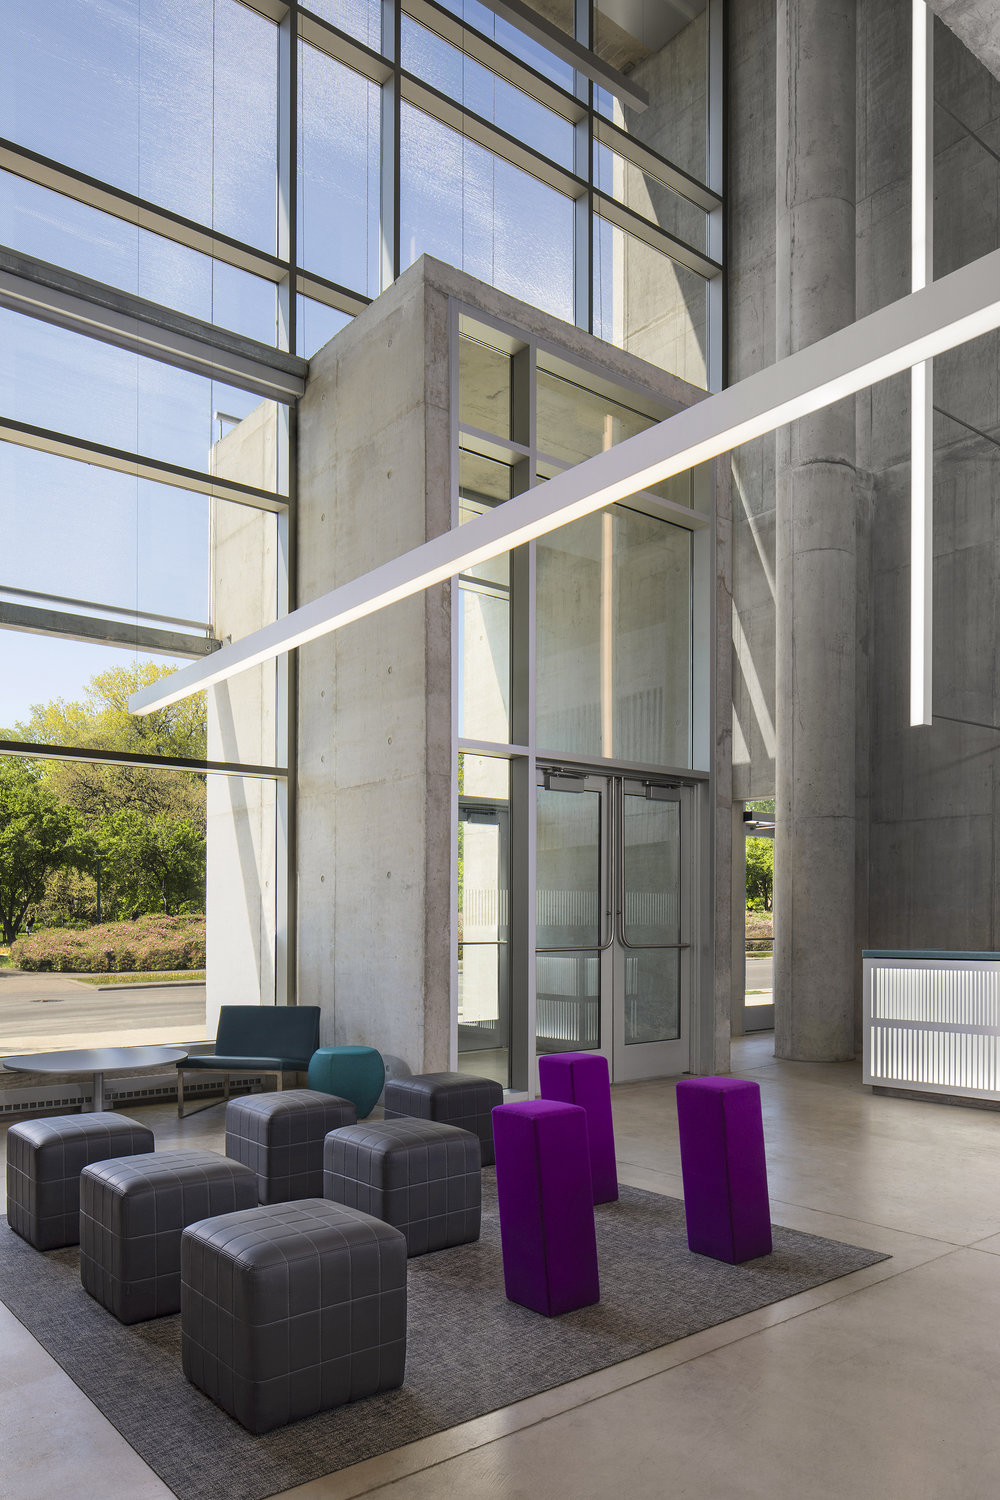 VUE53  COMPLETED  The residences in Hyde Park was recently completed as a joint effort with  VDT  and SLH who provided the design of interiors and furnishings.